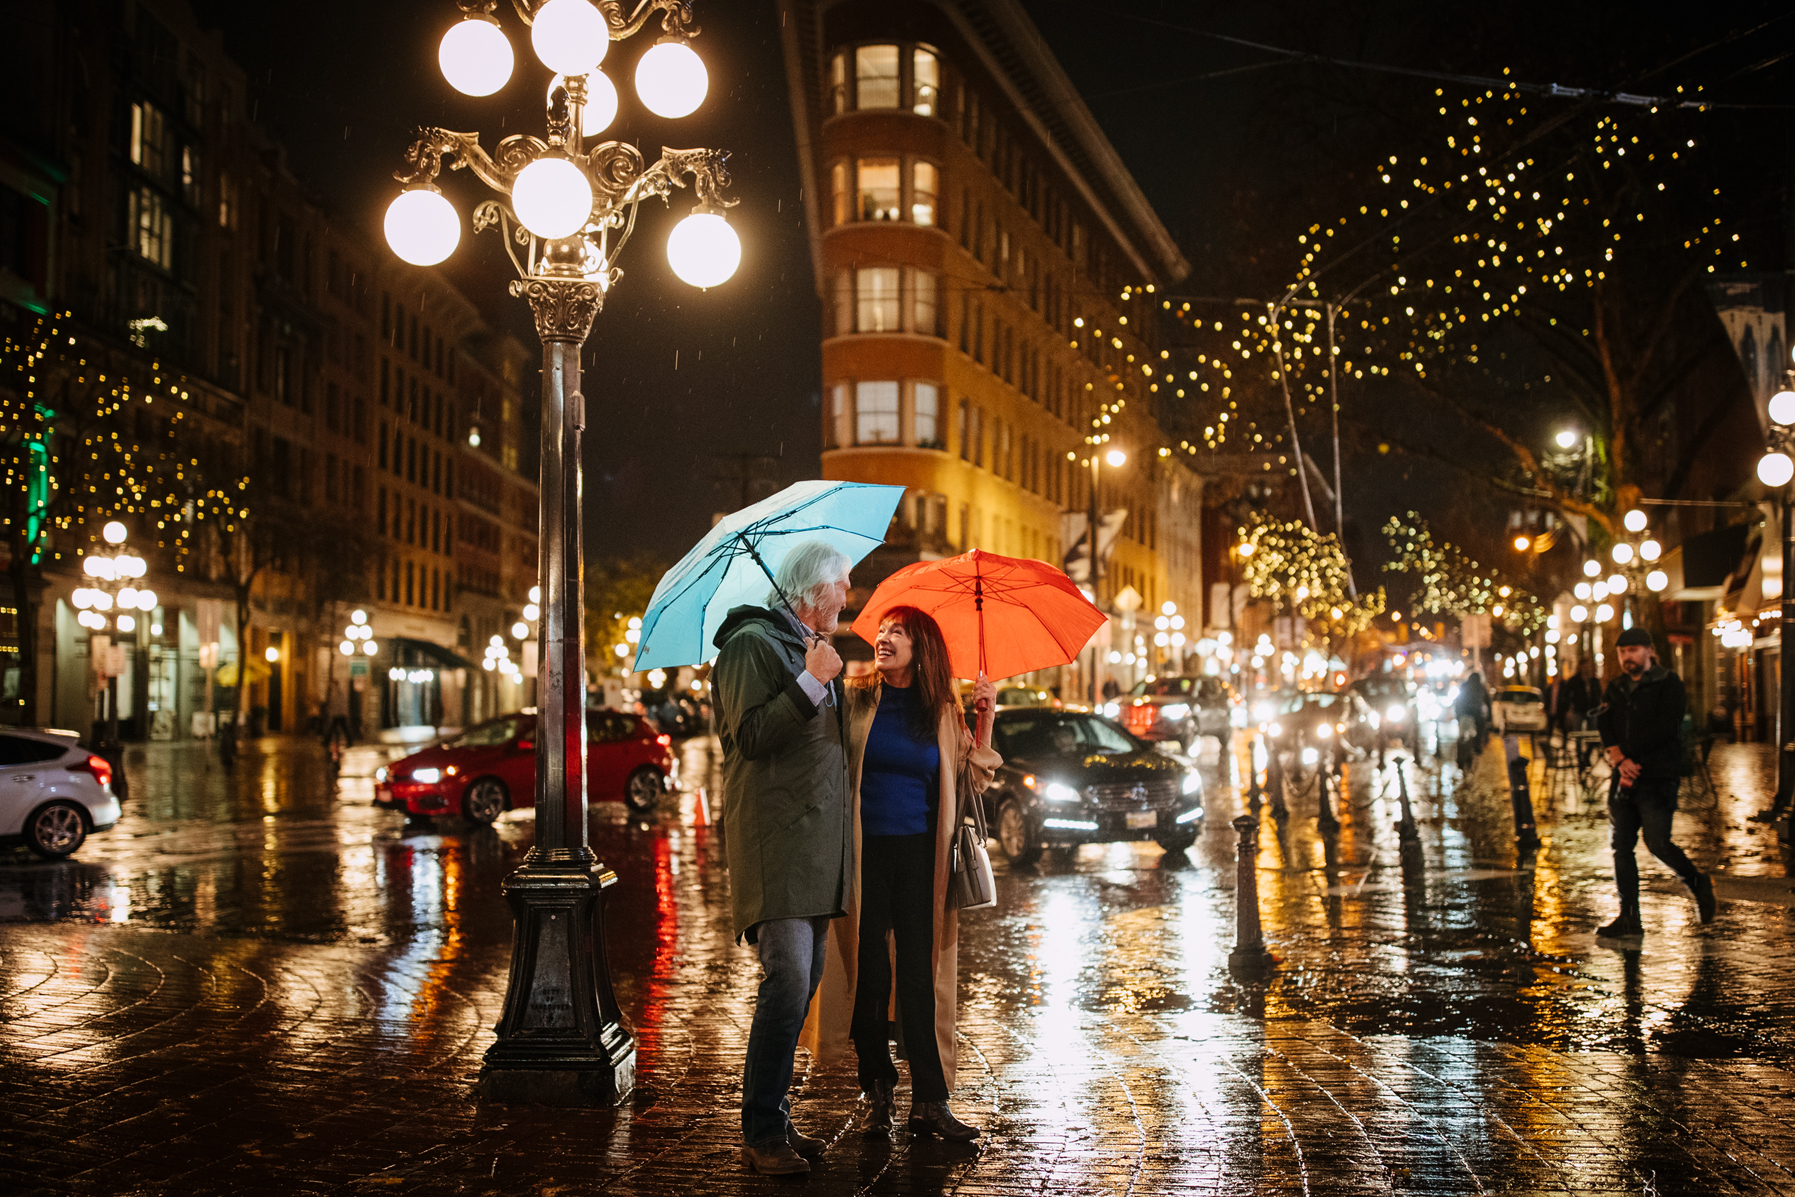 Healthy benefits of walking in the rain